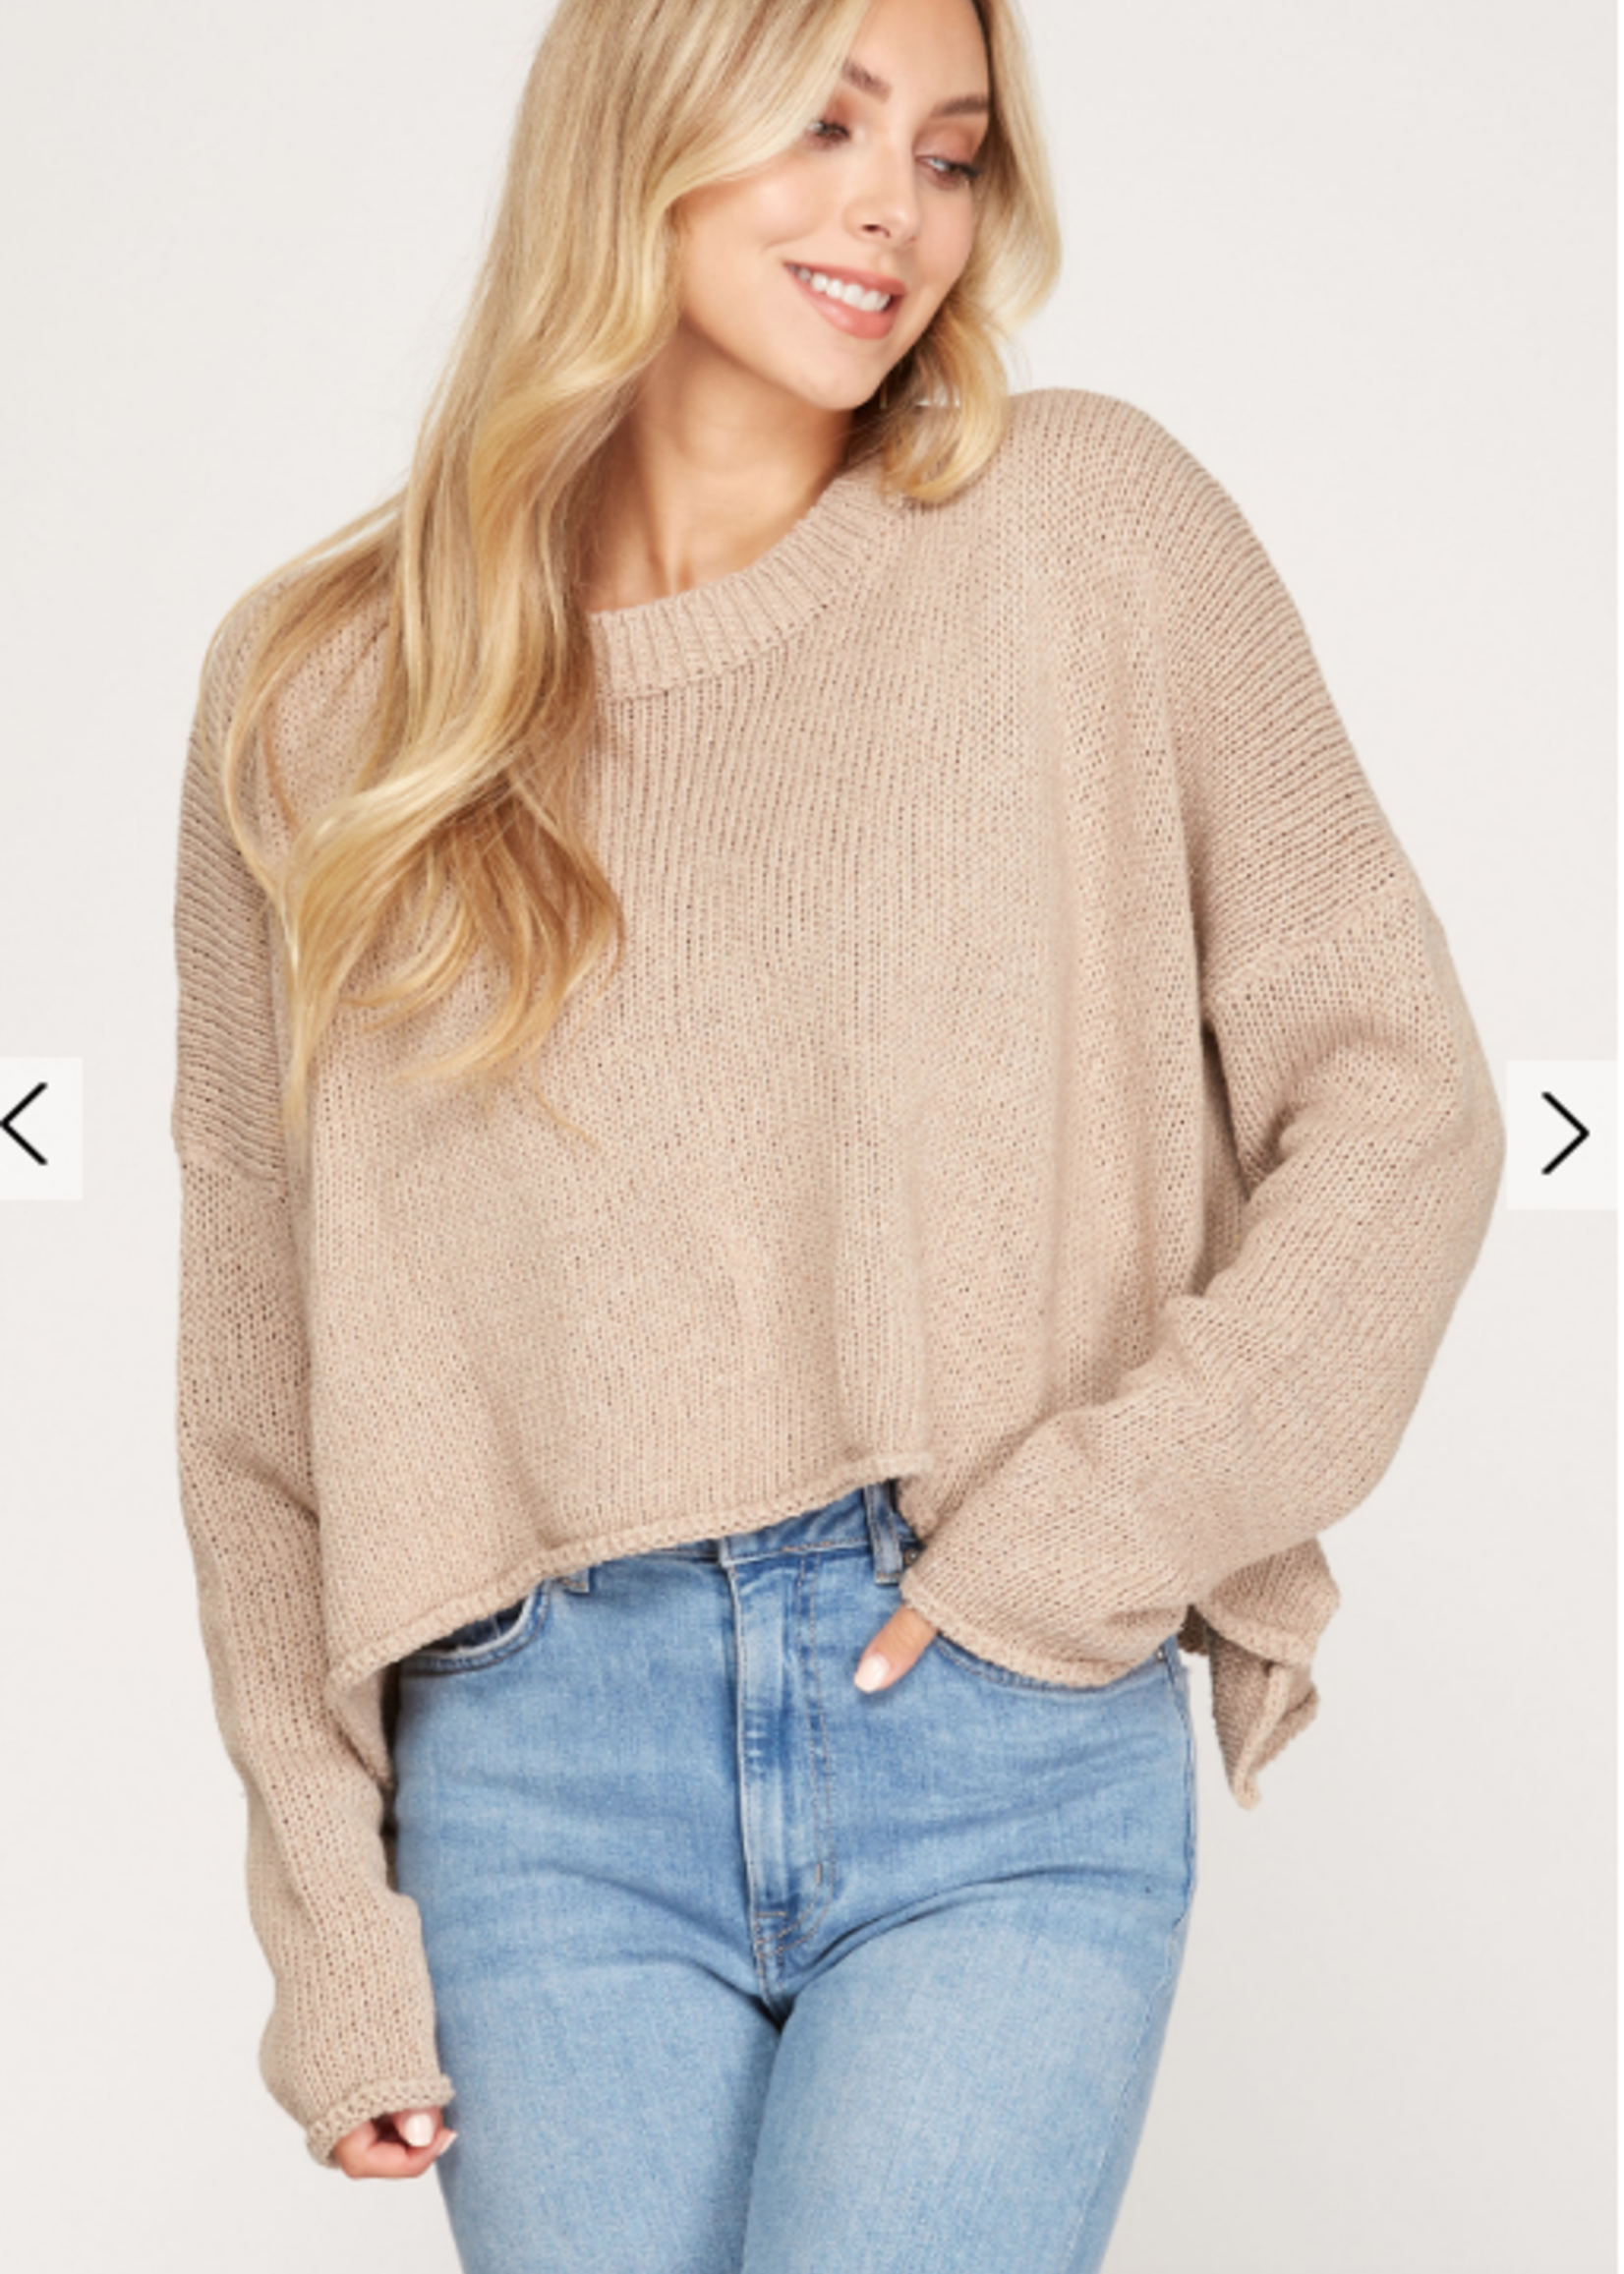 The Best Season Sweater (2 Colors)